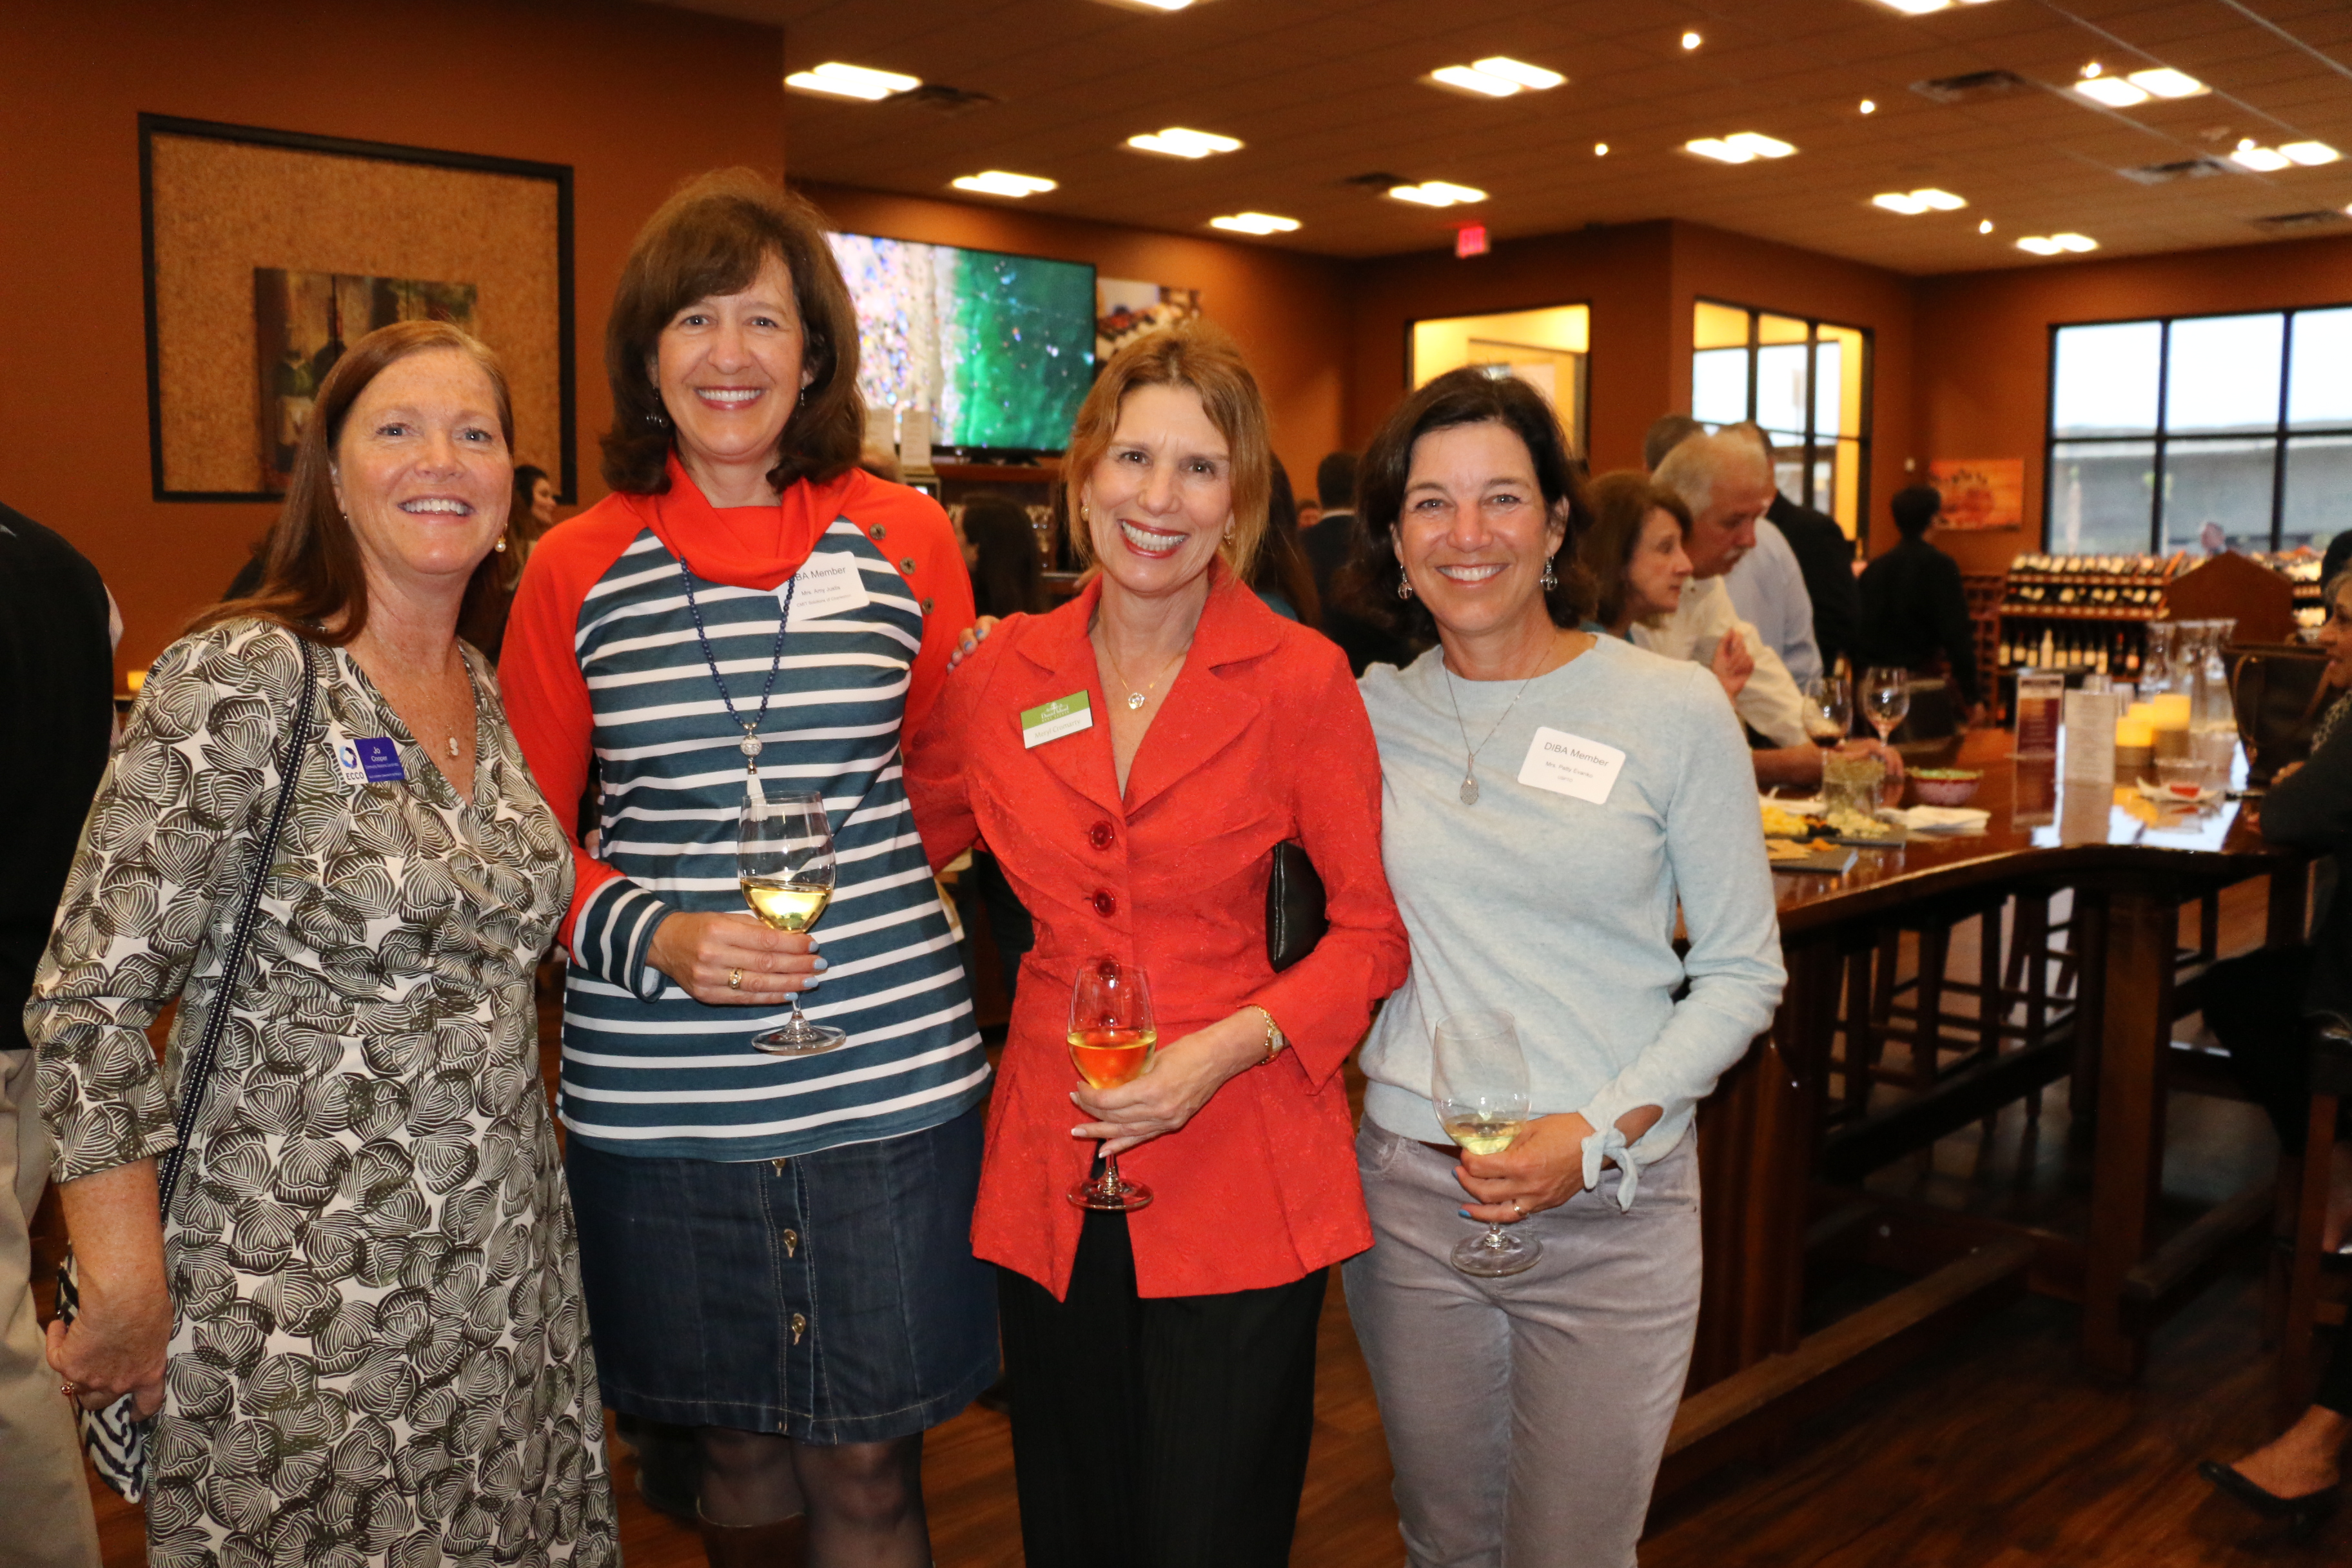 DIBA Members Jo Cooper of ECCO, Amy Justice of CMIT, Meryl Cromarty of Daniel Island Real Estate and Patty Evanko.